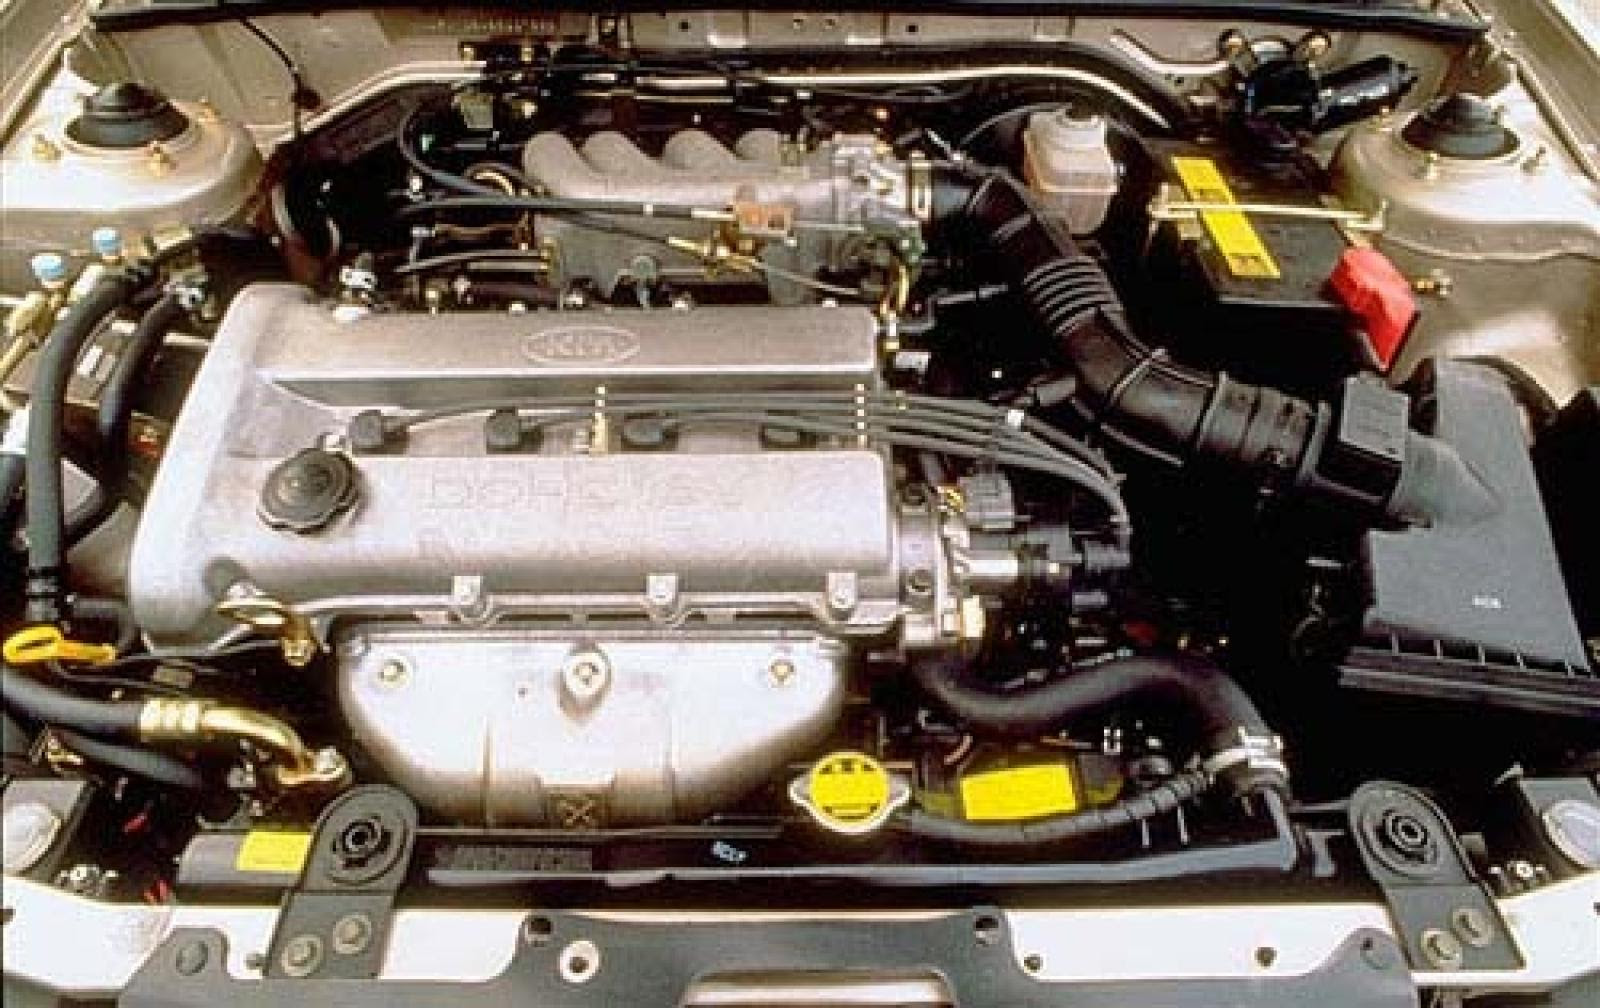 2005 Kium Sedona Engine Diagram